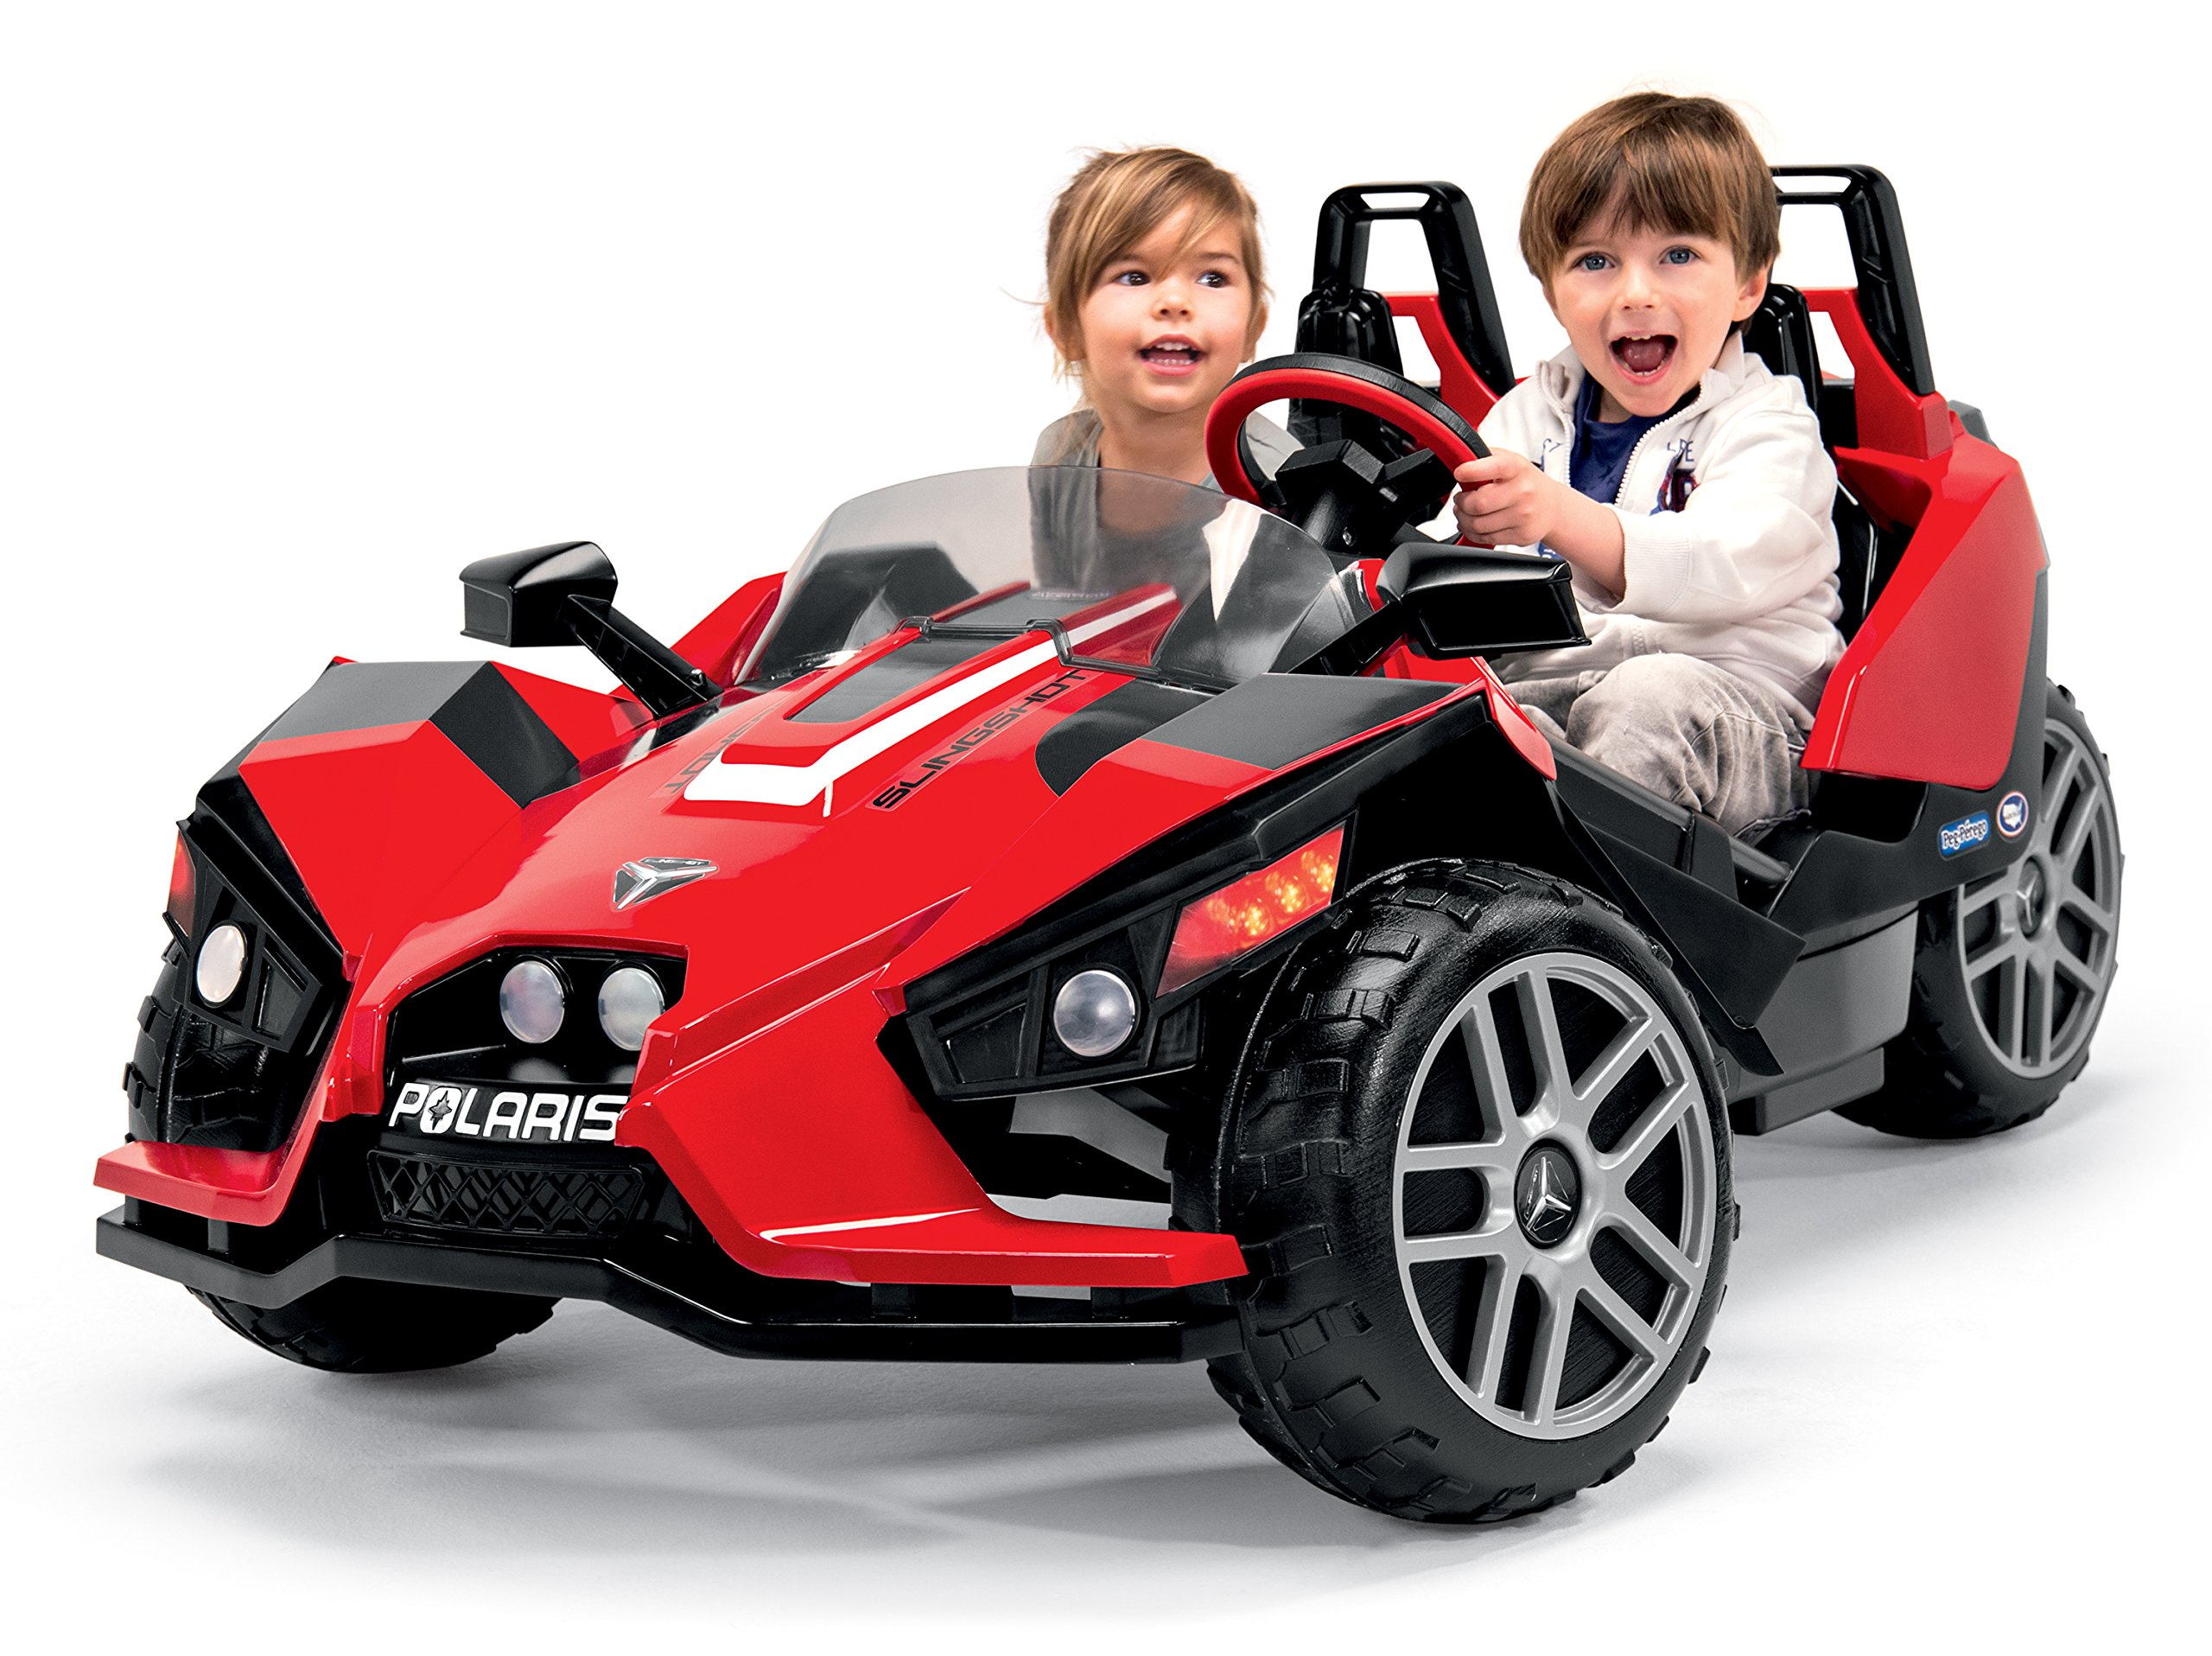 Buy Polaris Peg Perego Now!